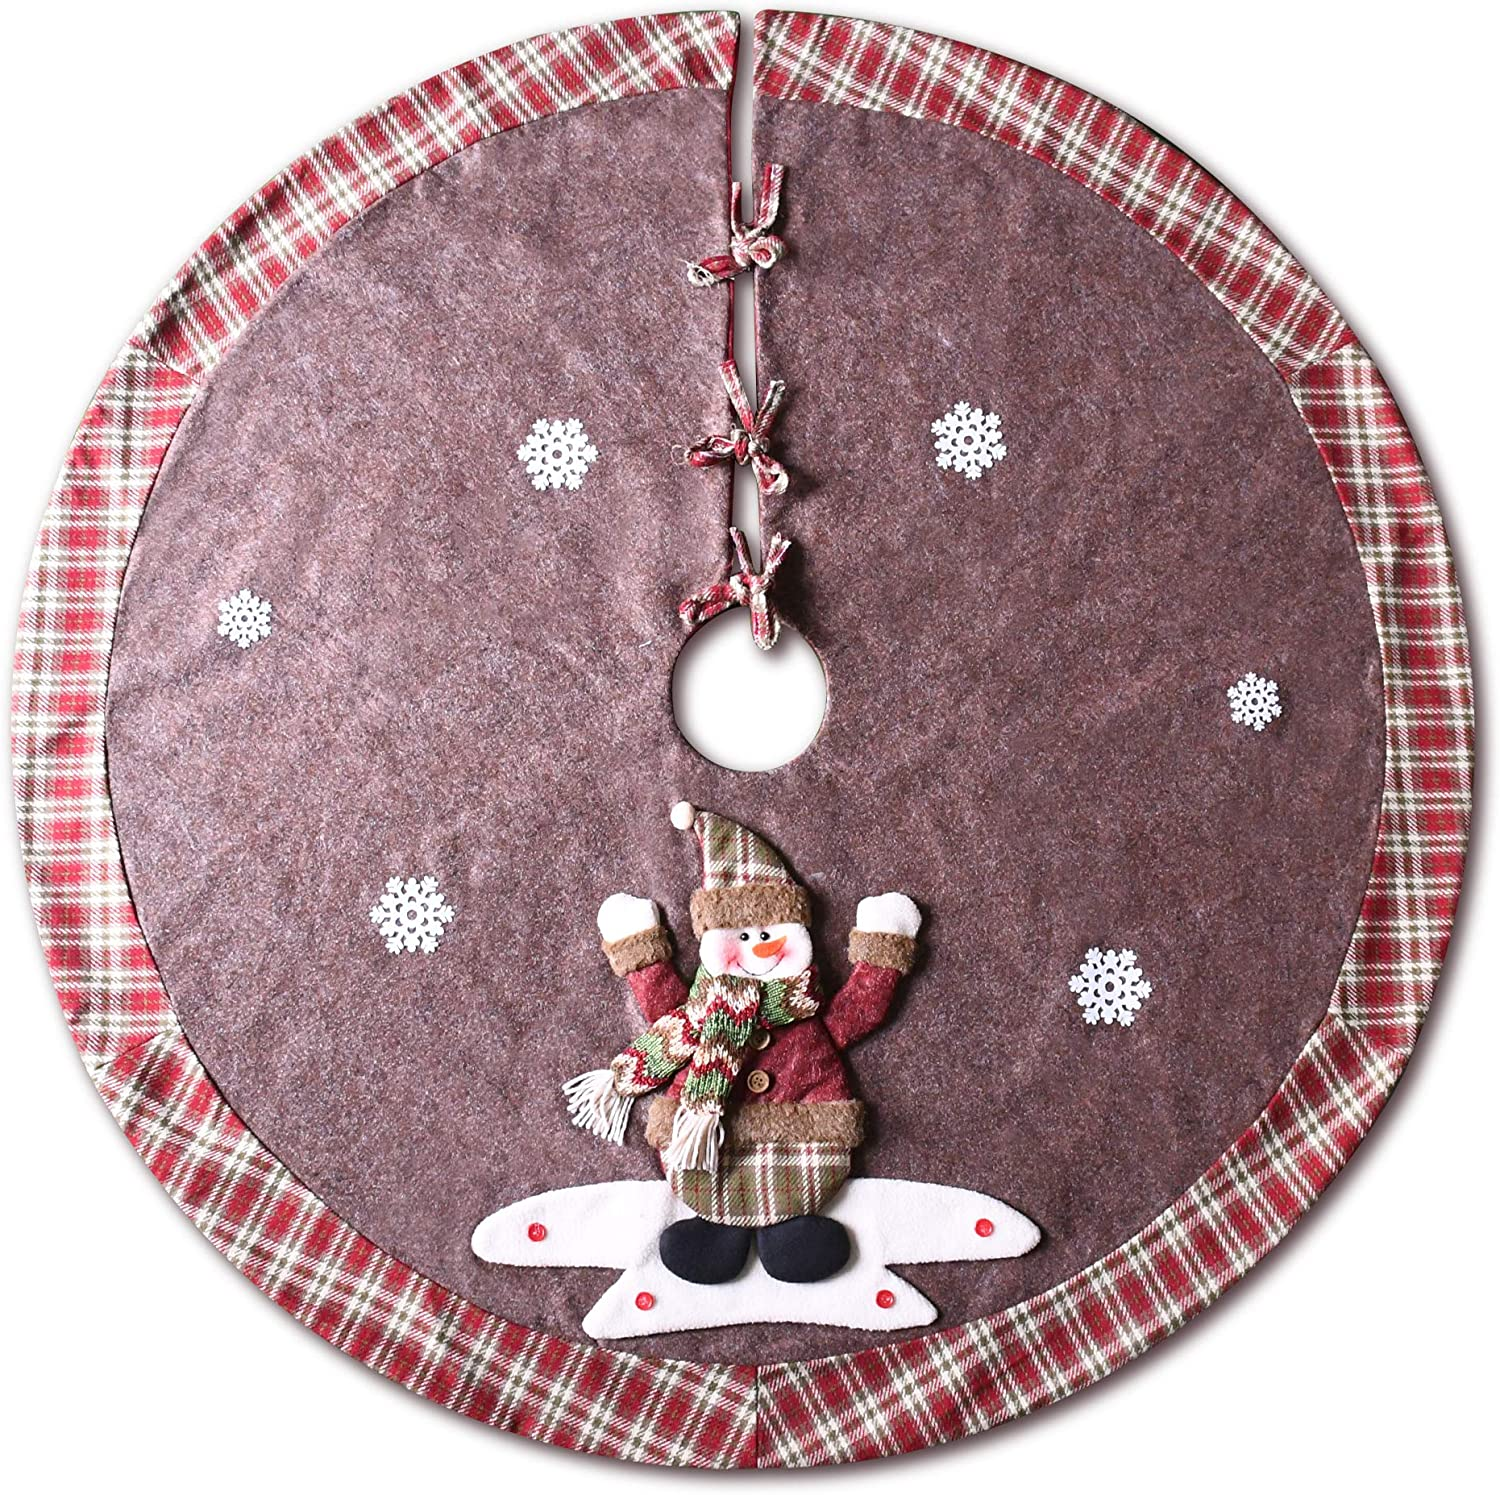 YuQi Christmas Tree Skirt, 48 inch Plaid Edge Linen Burlap Tree Skirt Mat with 3D Snowman for Indoor Outdoor Christmas Decorations Home and Holiday Party